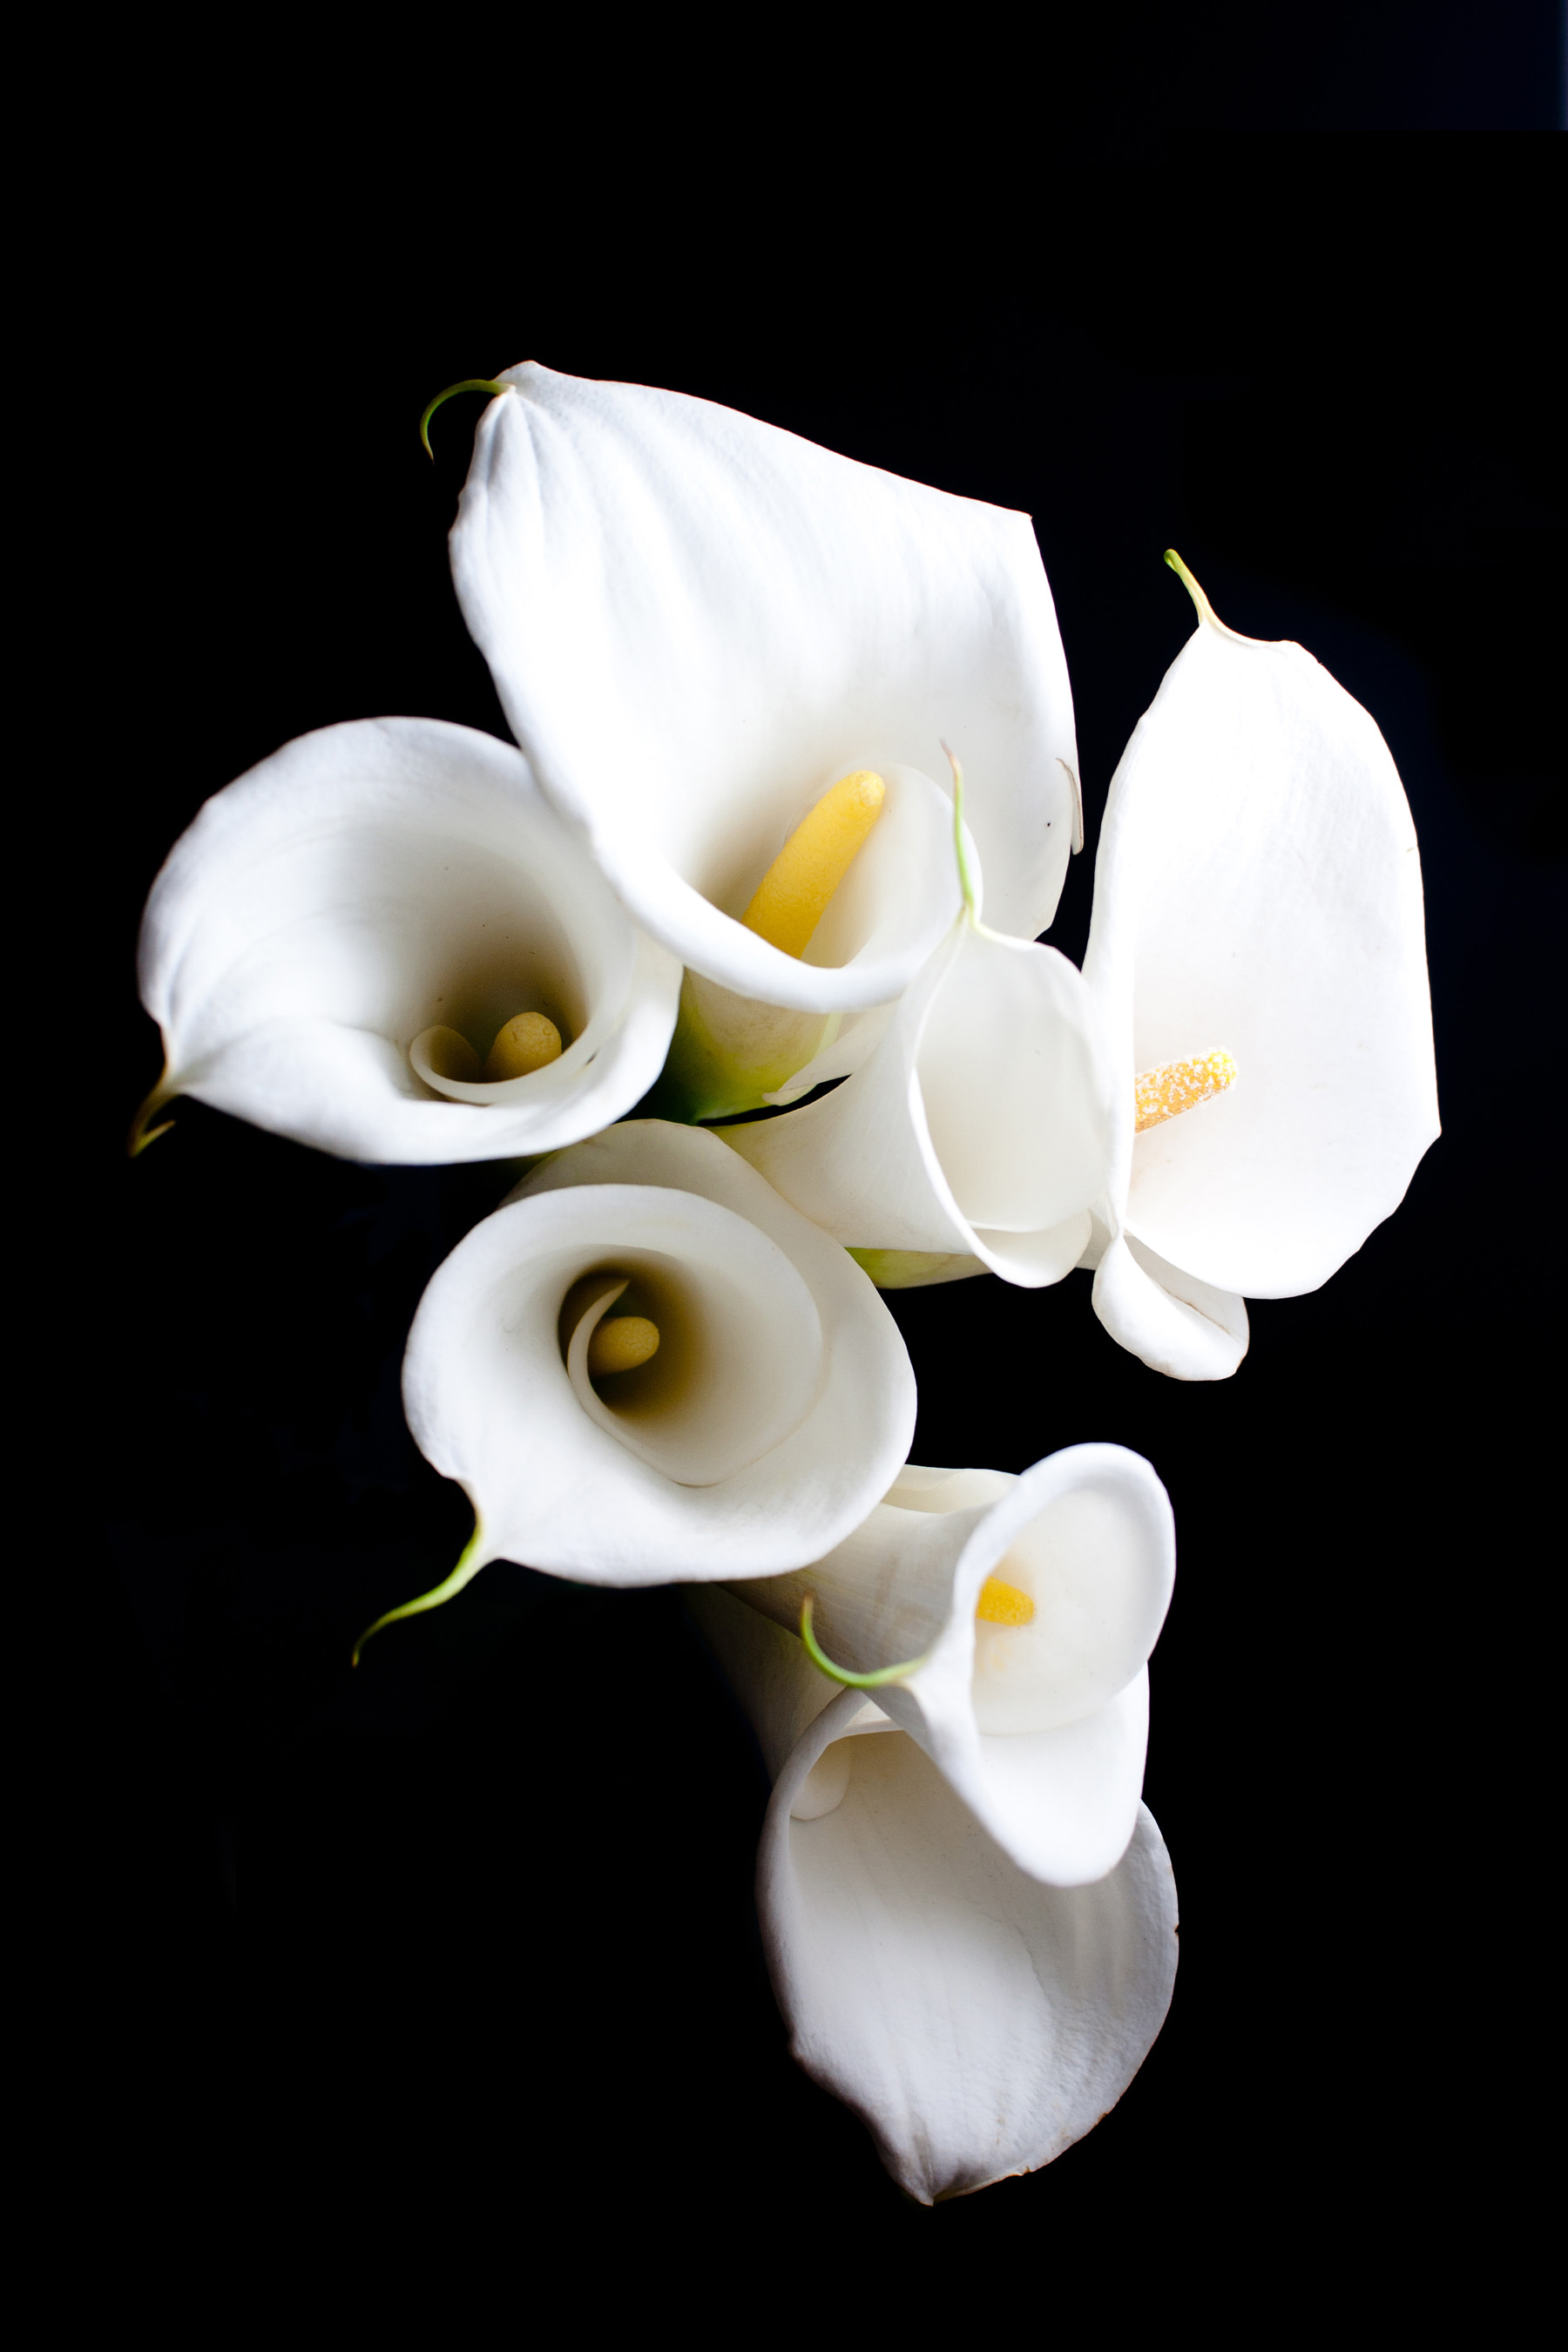 White calla lily flower close-up 52016